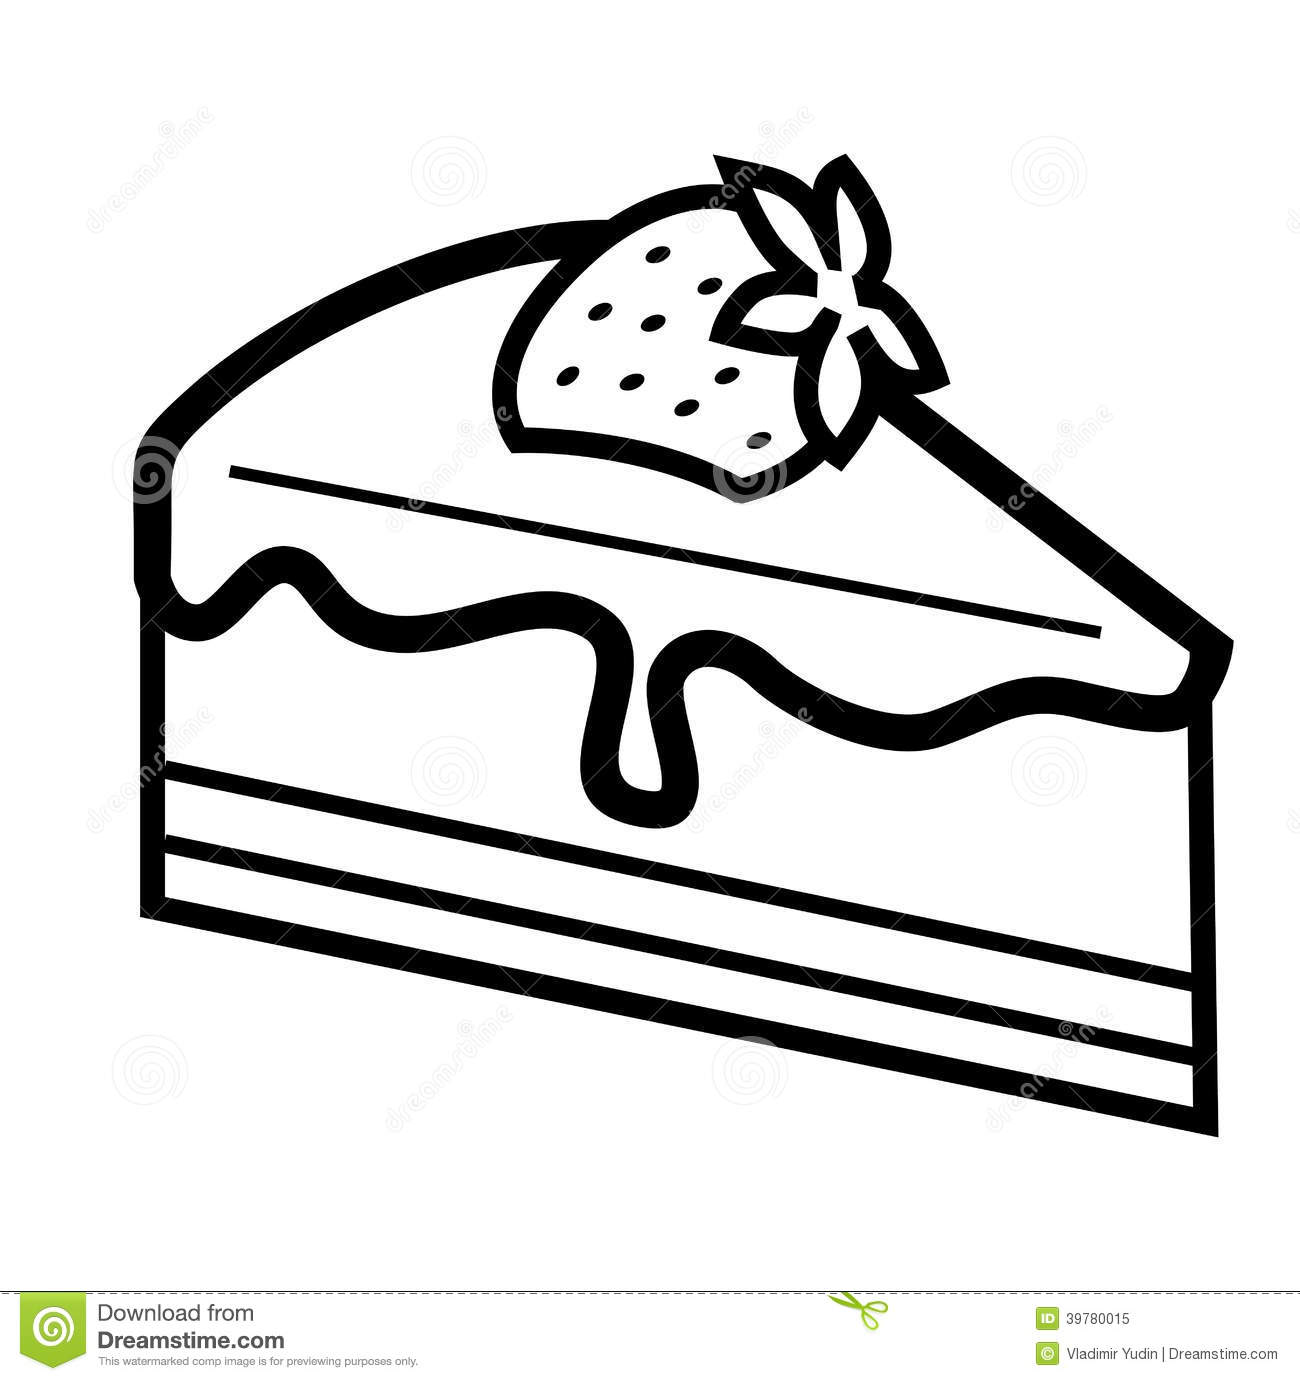 Cake Clipart Images Black And White : Cake Black And White Clipart - Clipart Suggest